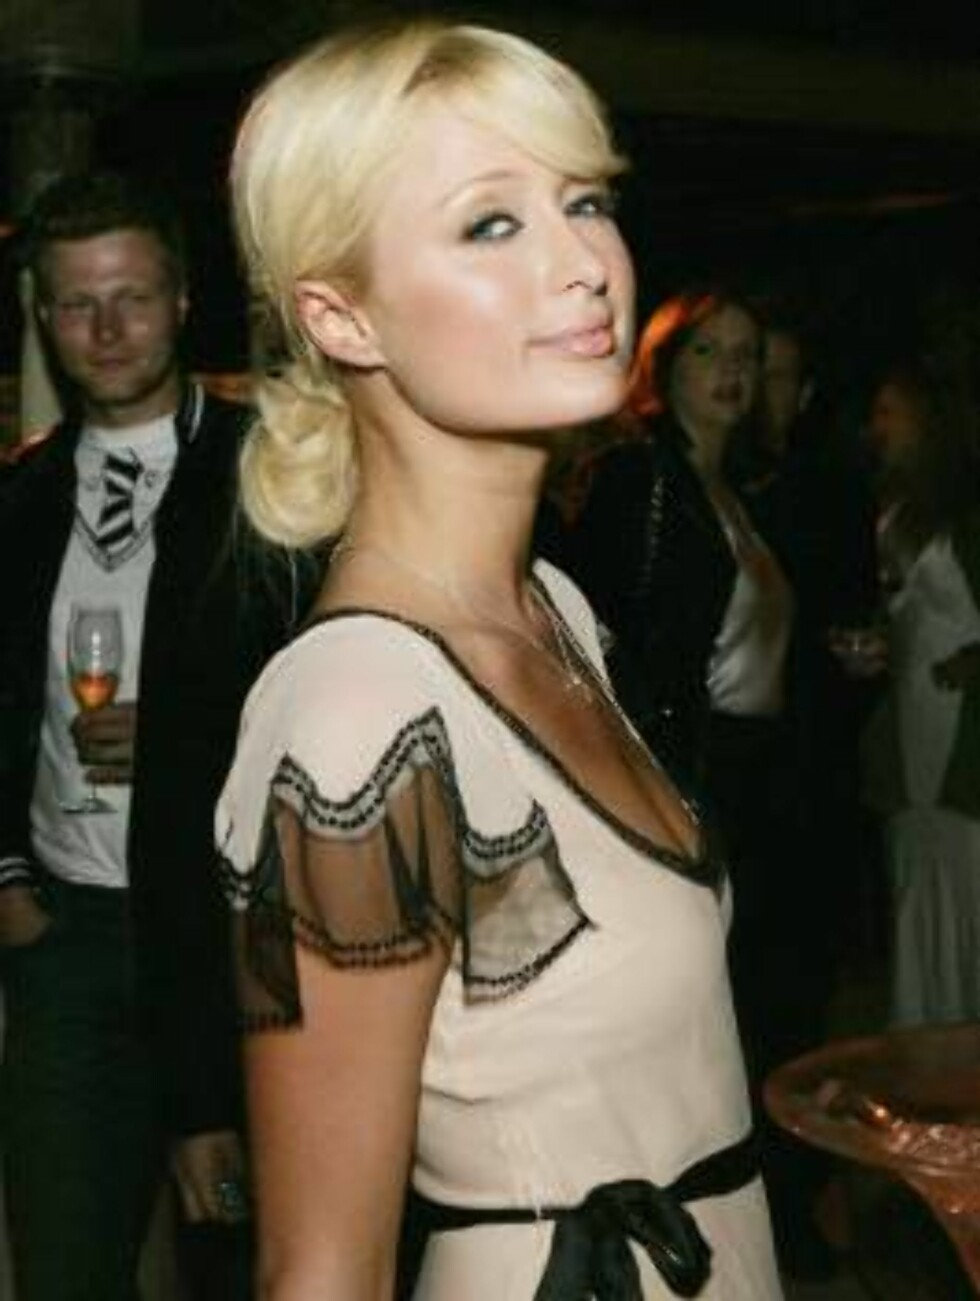 BEVERLY HILLS, CA - JUNE 2:  Paris Hilton poses at the International Launch of Dom Perignon Rose Vintage 1996 Champagne by Karl Lagerfeld on June 2, 2006 in Beverly Hills, California. (Photo by Kevin Winter/Getty Images) *** Local Caption *** Paris Hilton Foto: All Over Press